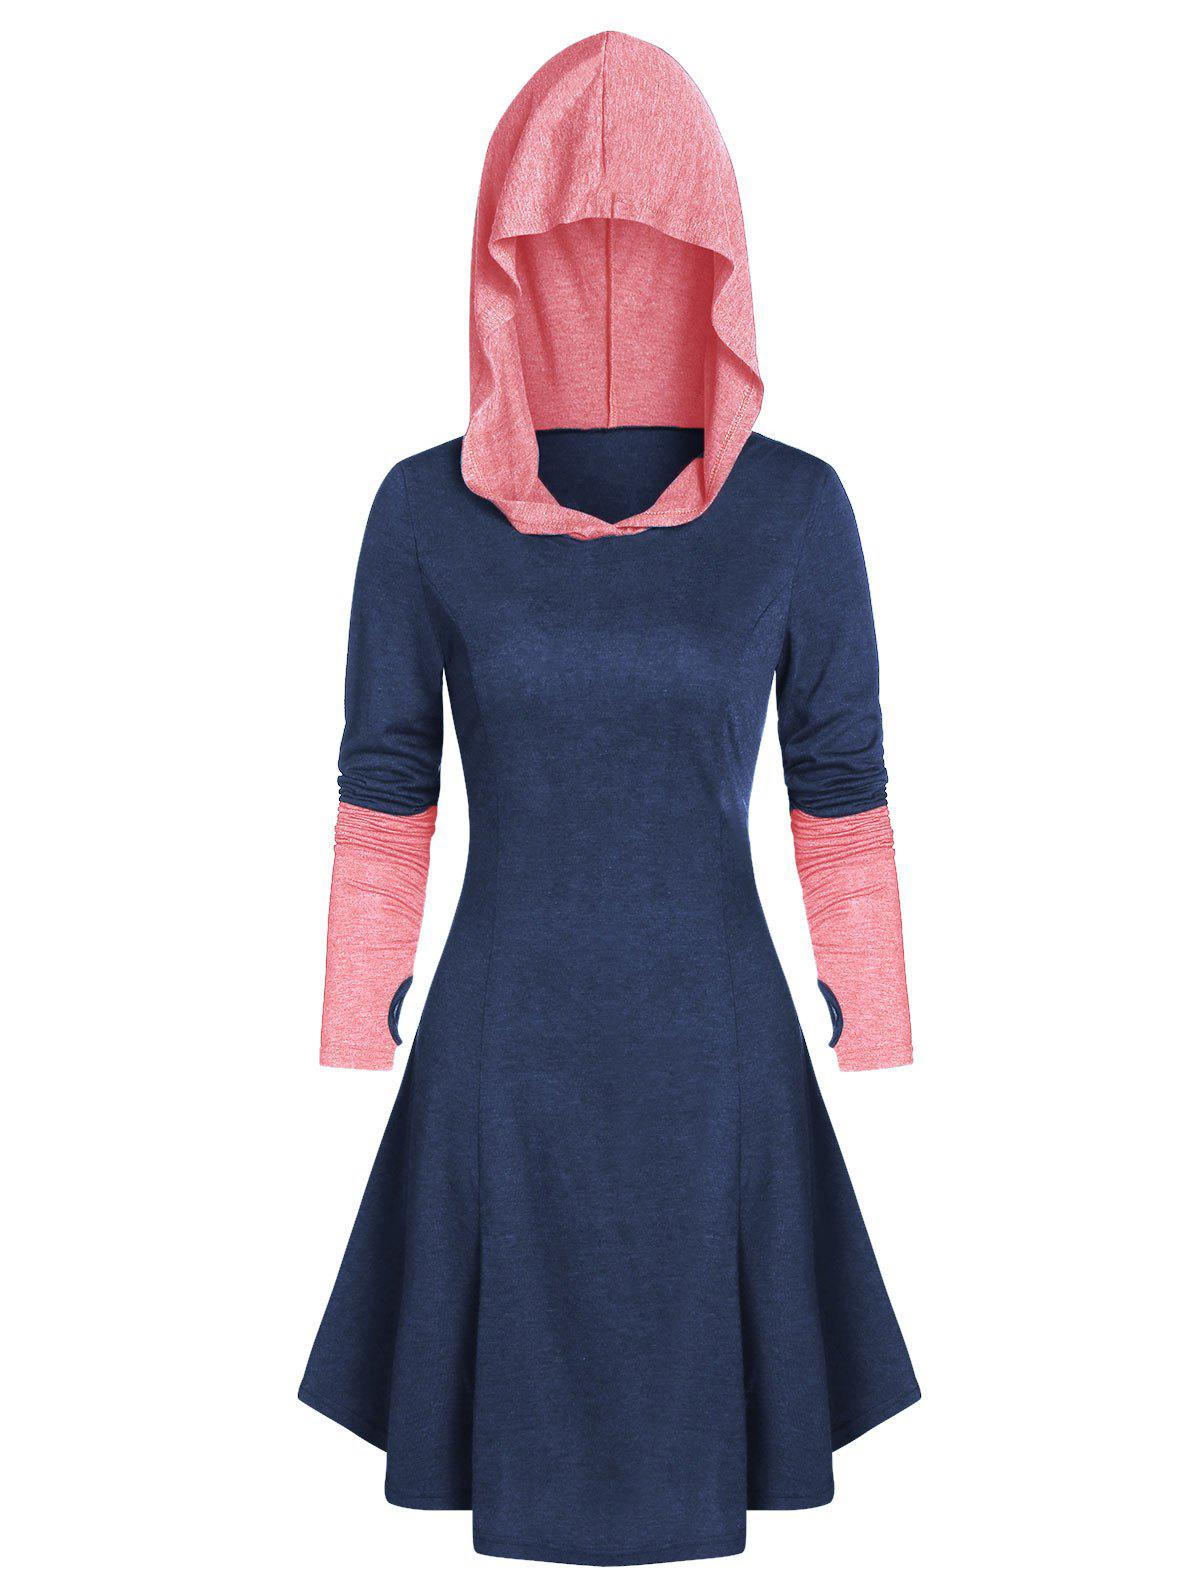 New Hooded Glove Sleeve Lace-up Contrast Dress